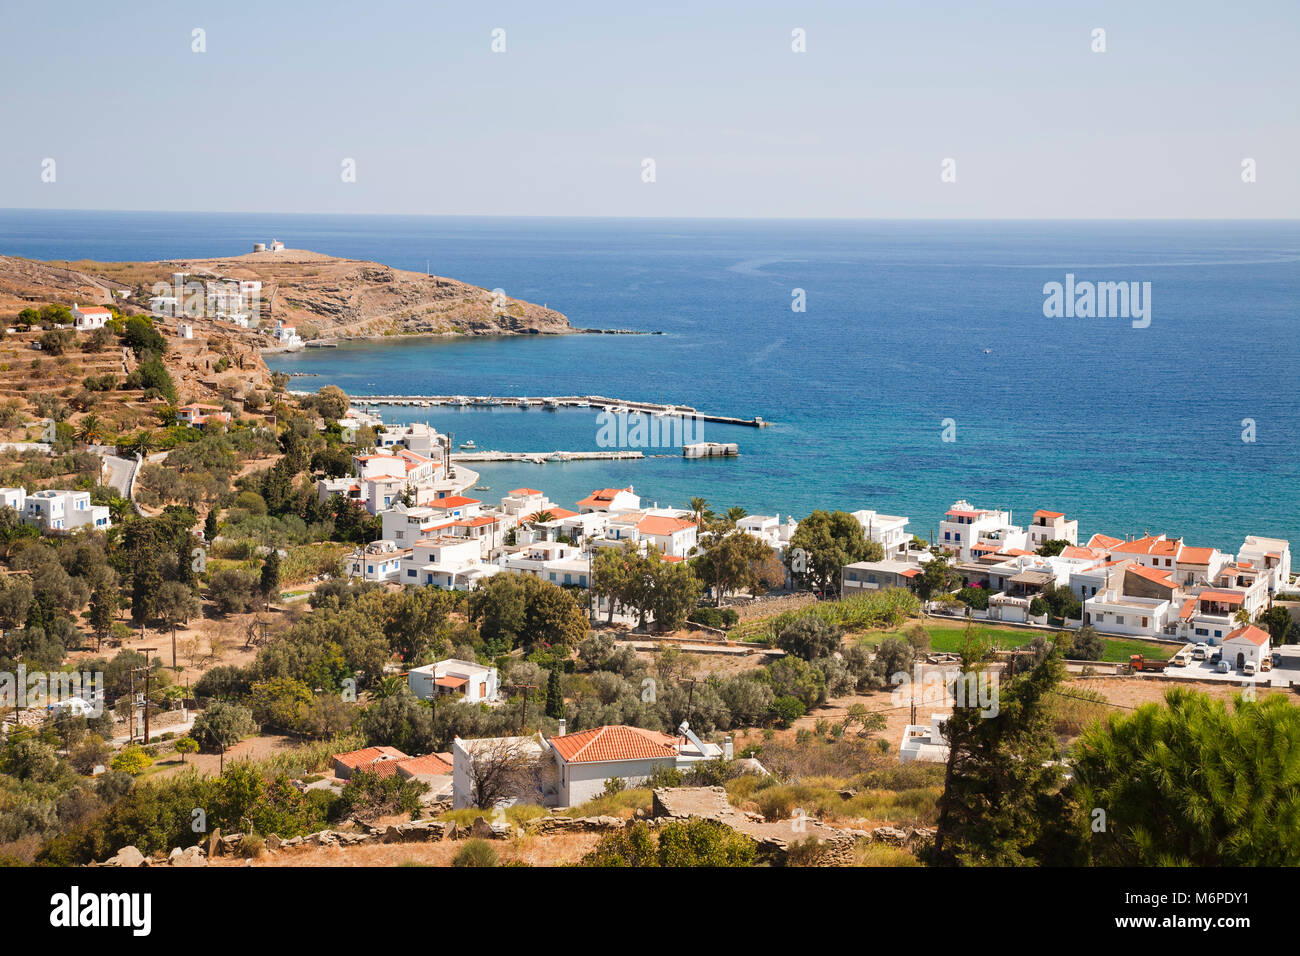 Korthi Bay and Ormos Korthiou village, Andros island, Cyclades islands, Aegean sea, Greece, Europe Stock Photo